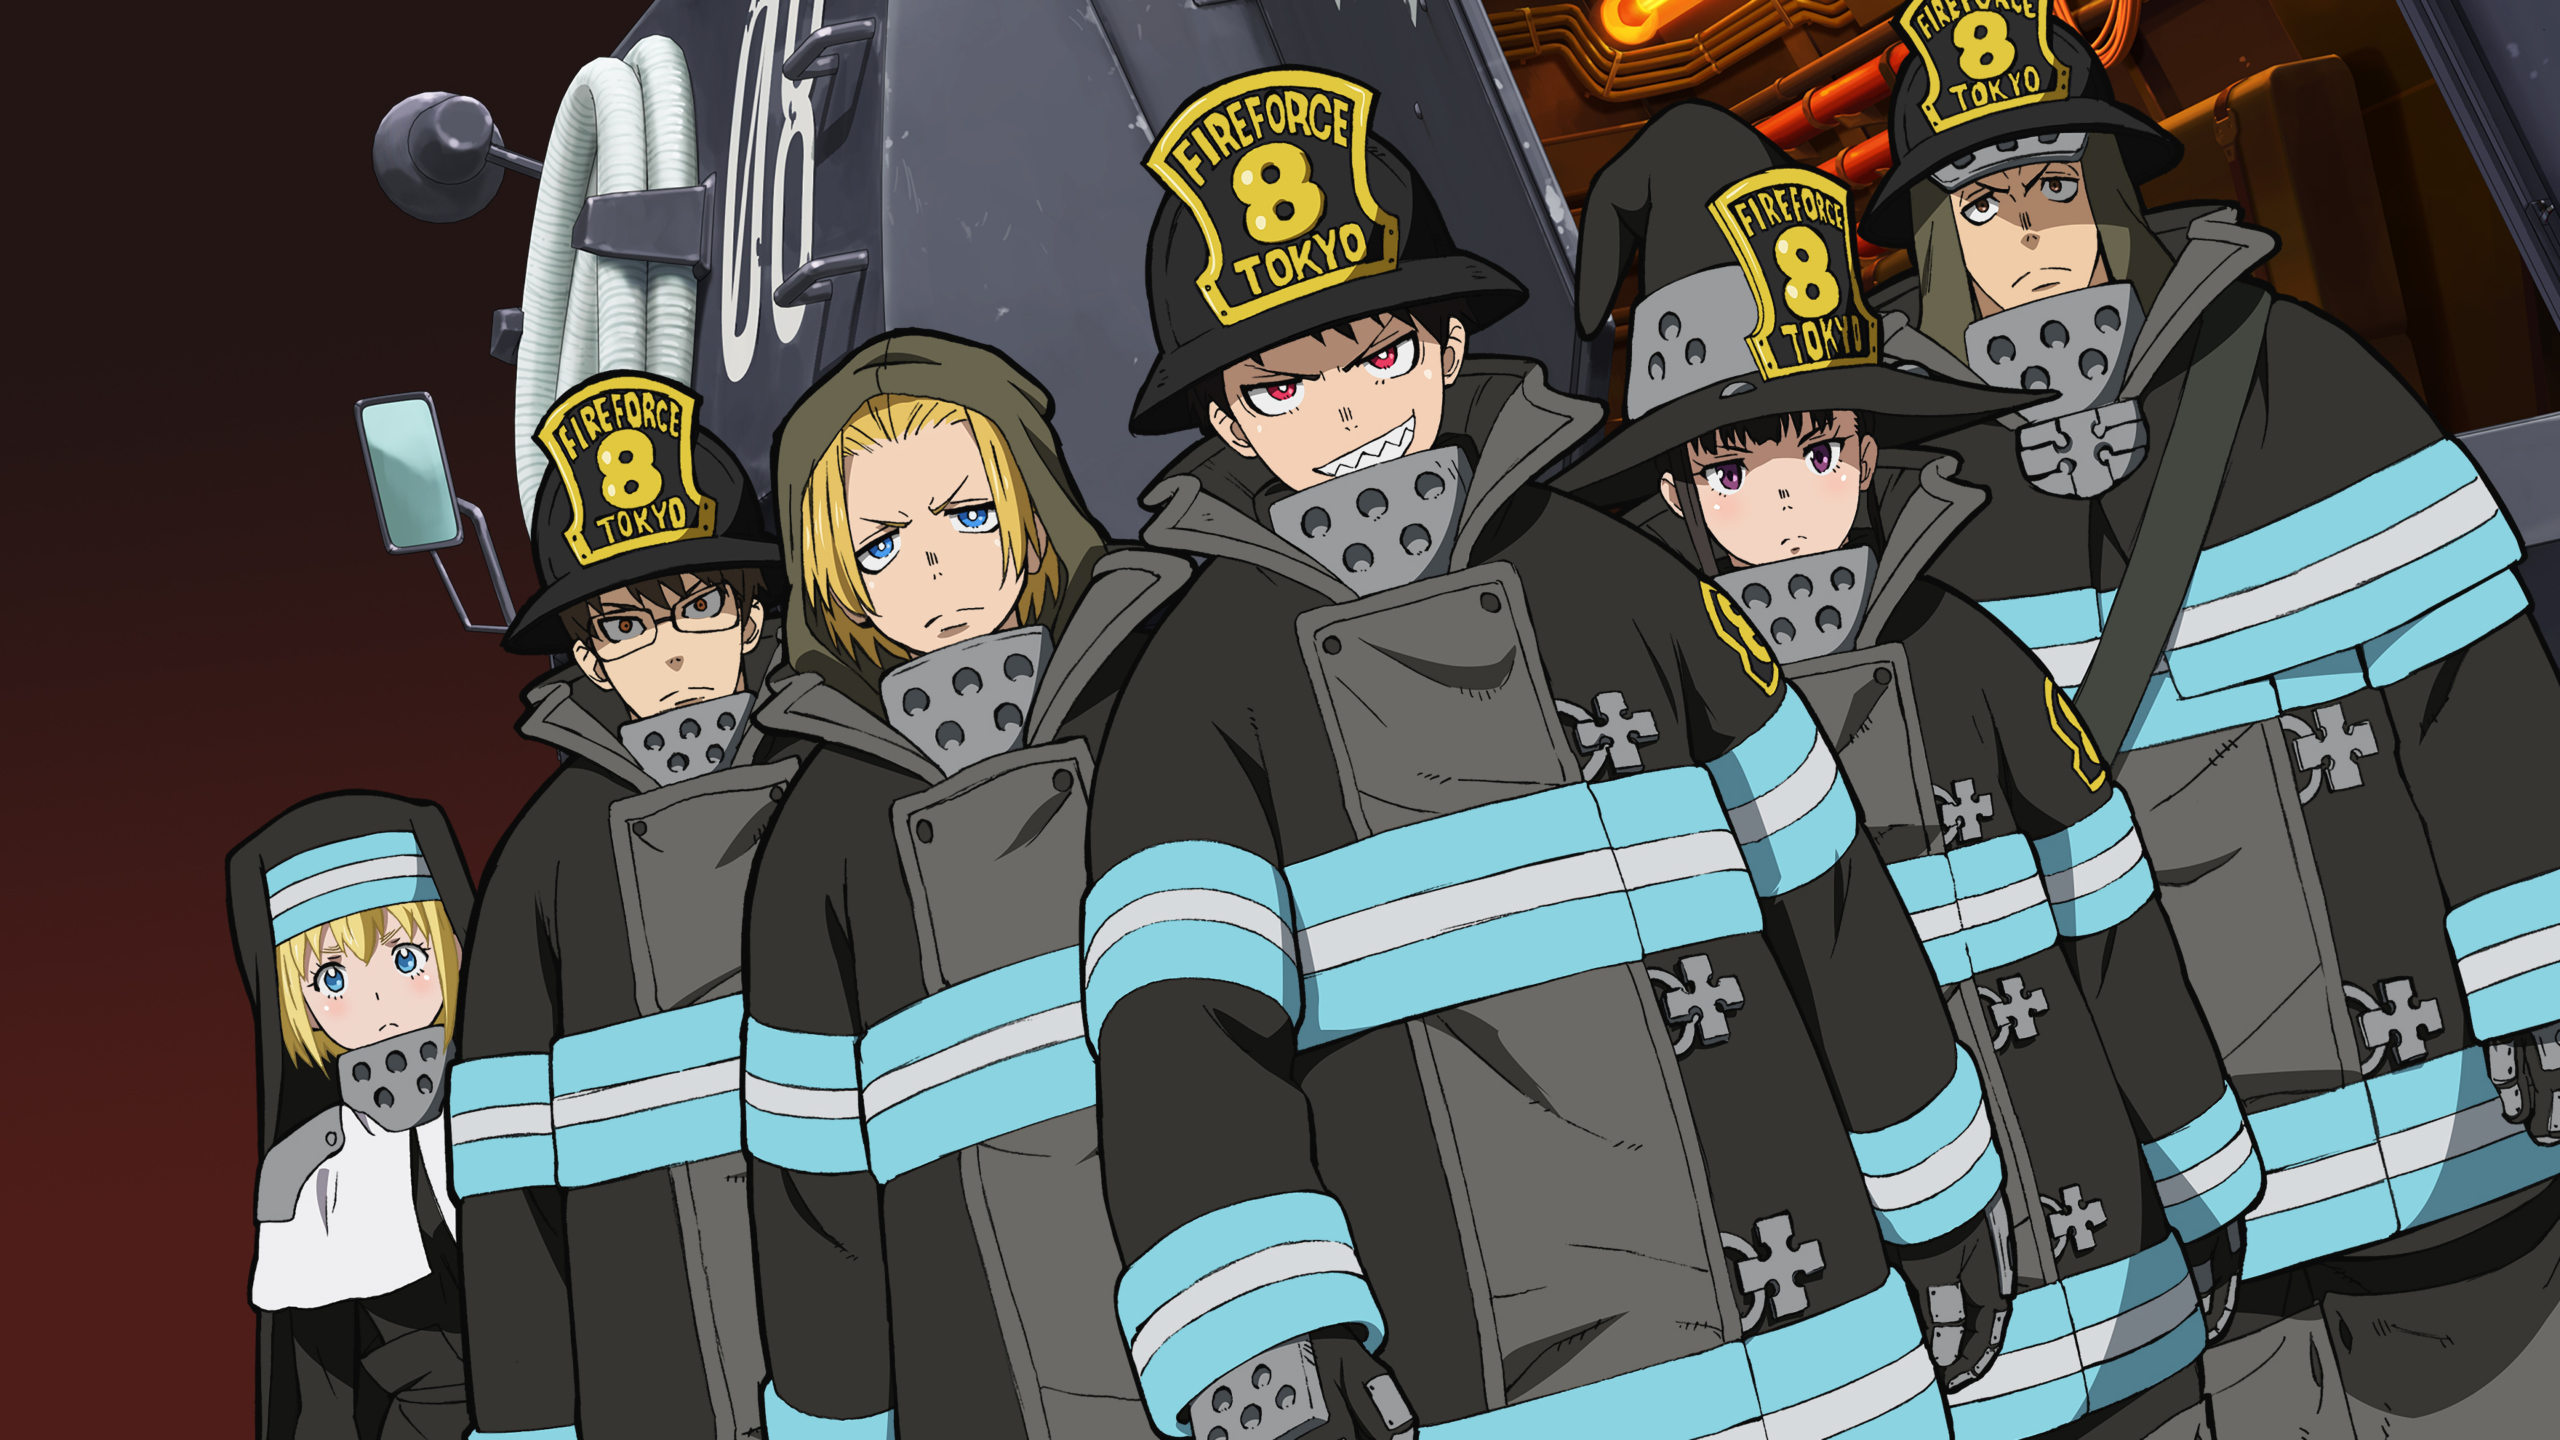 Fire Force Wallpaper – The Characters From The Fire Force Series